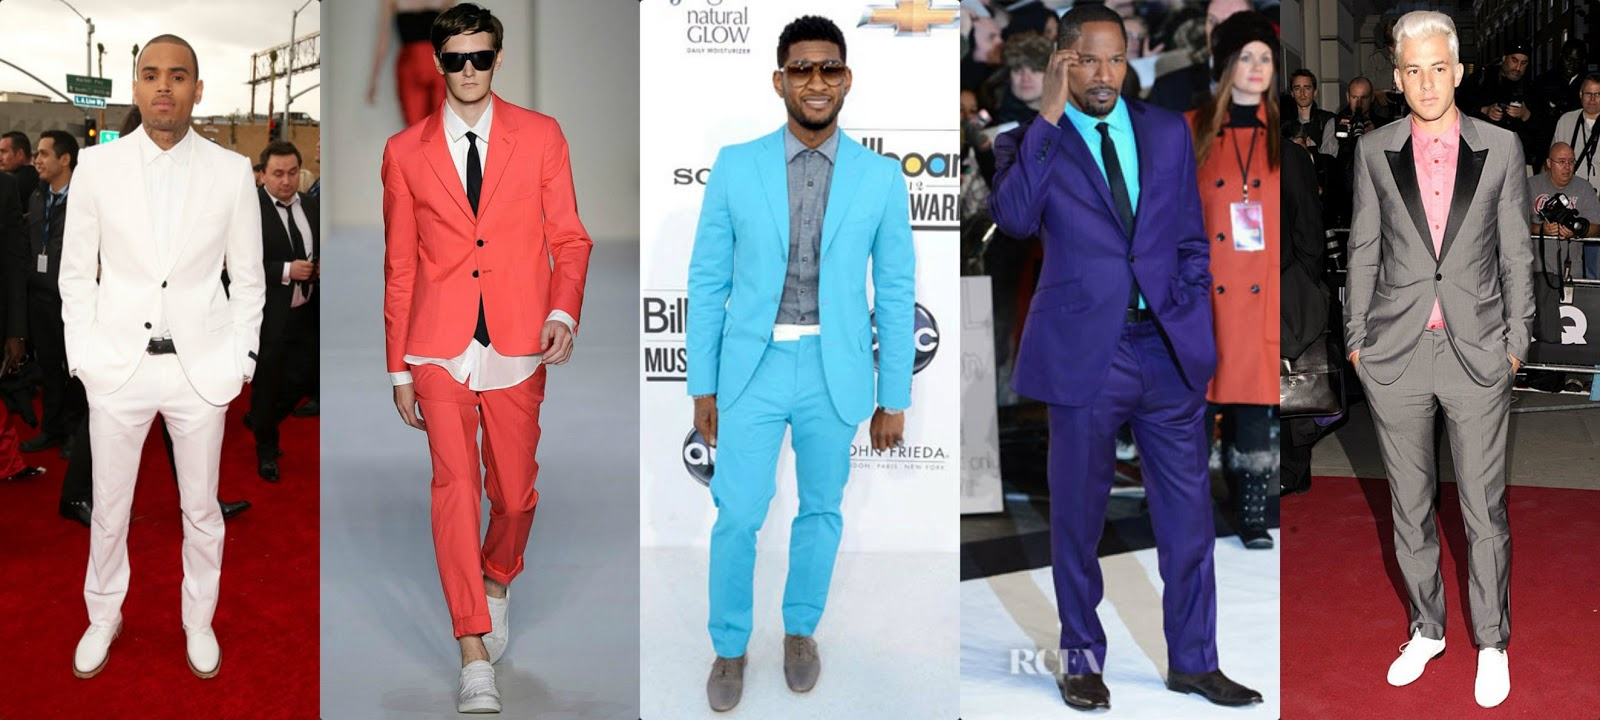 Mookeh\'s Blog : Spring / Summer 2013 Men\'s Suit Trends